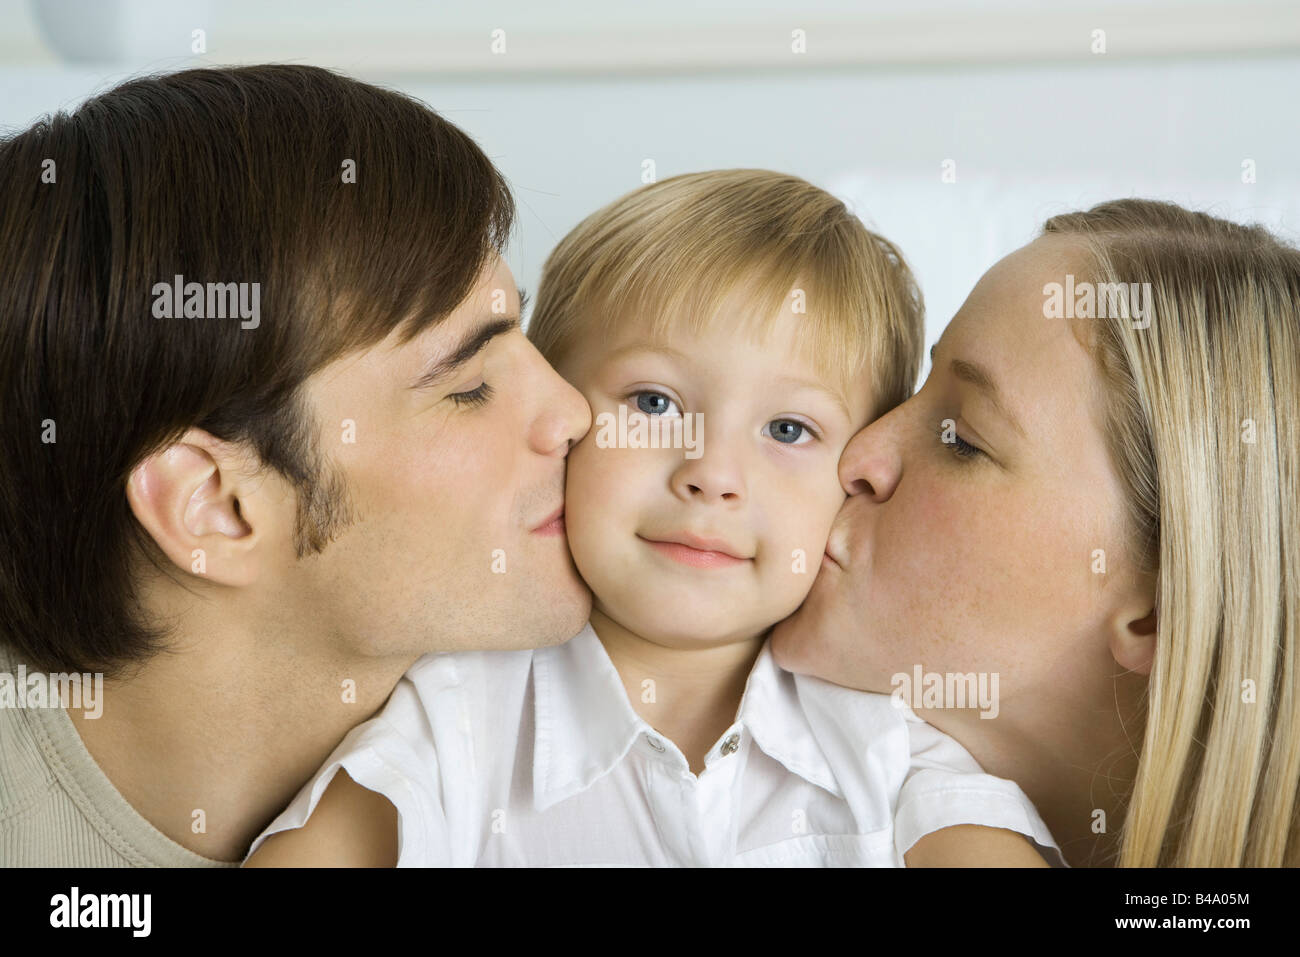 Parents kissing little boy's cheeks, boy smiling at camera - Stock Image